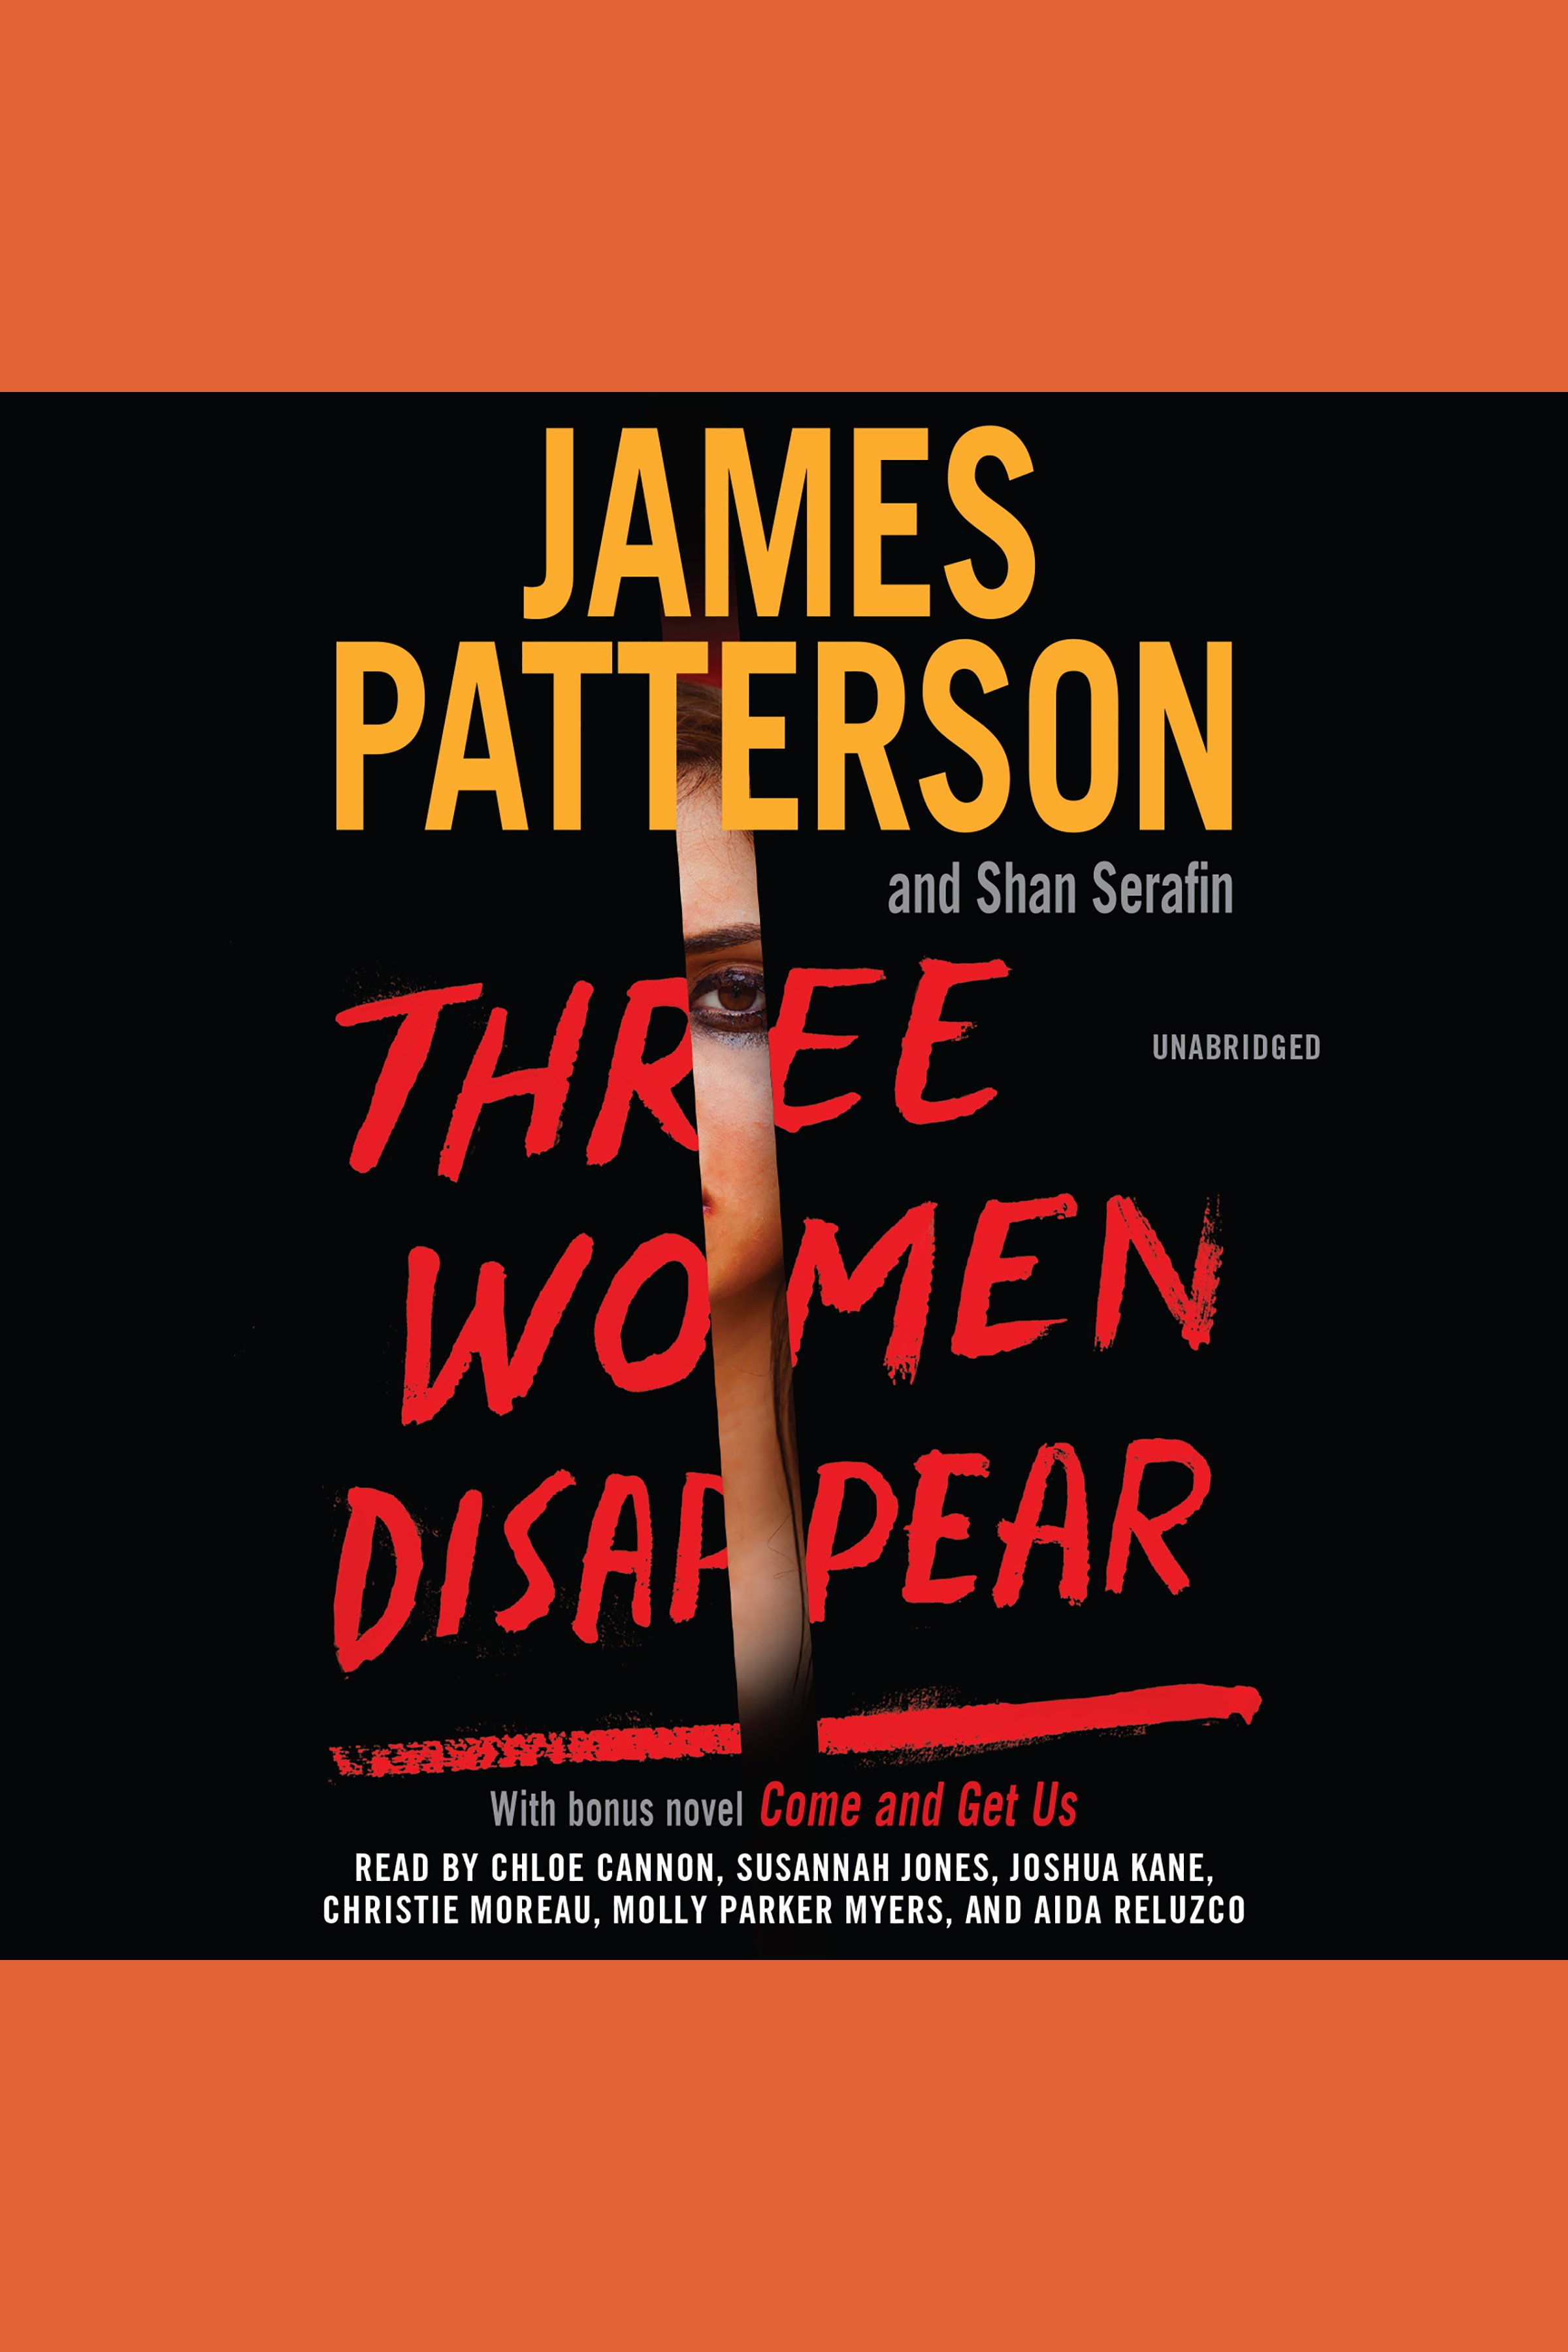 Three Women Disappear with bonus novel Come and Get Us